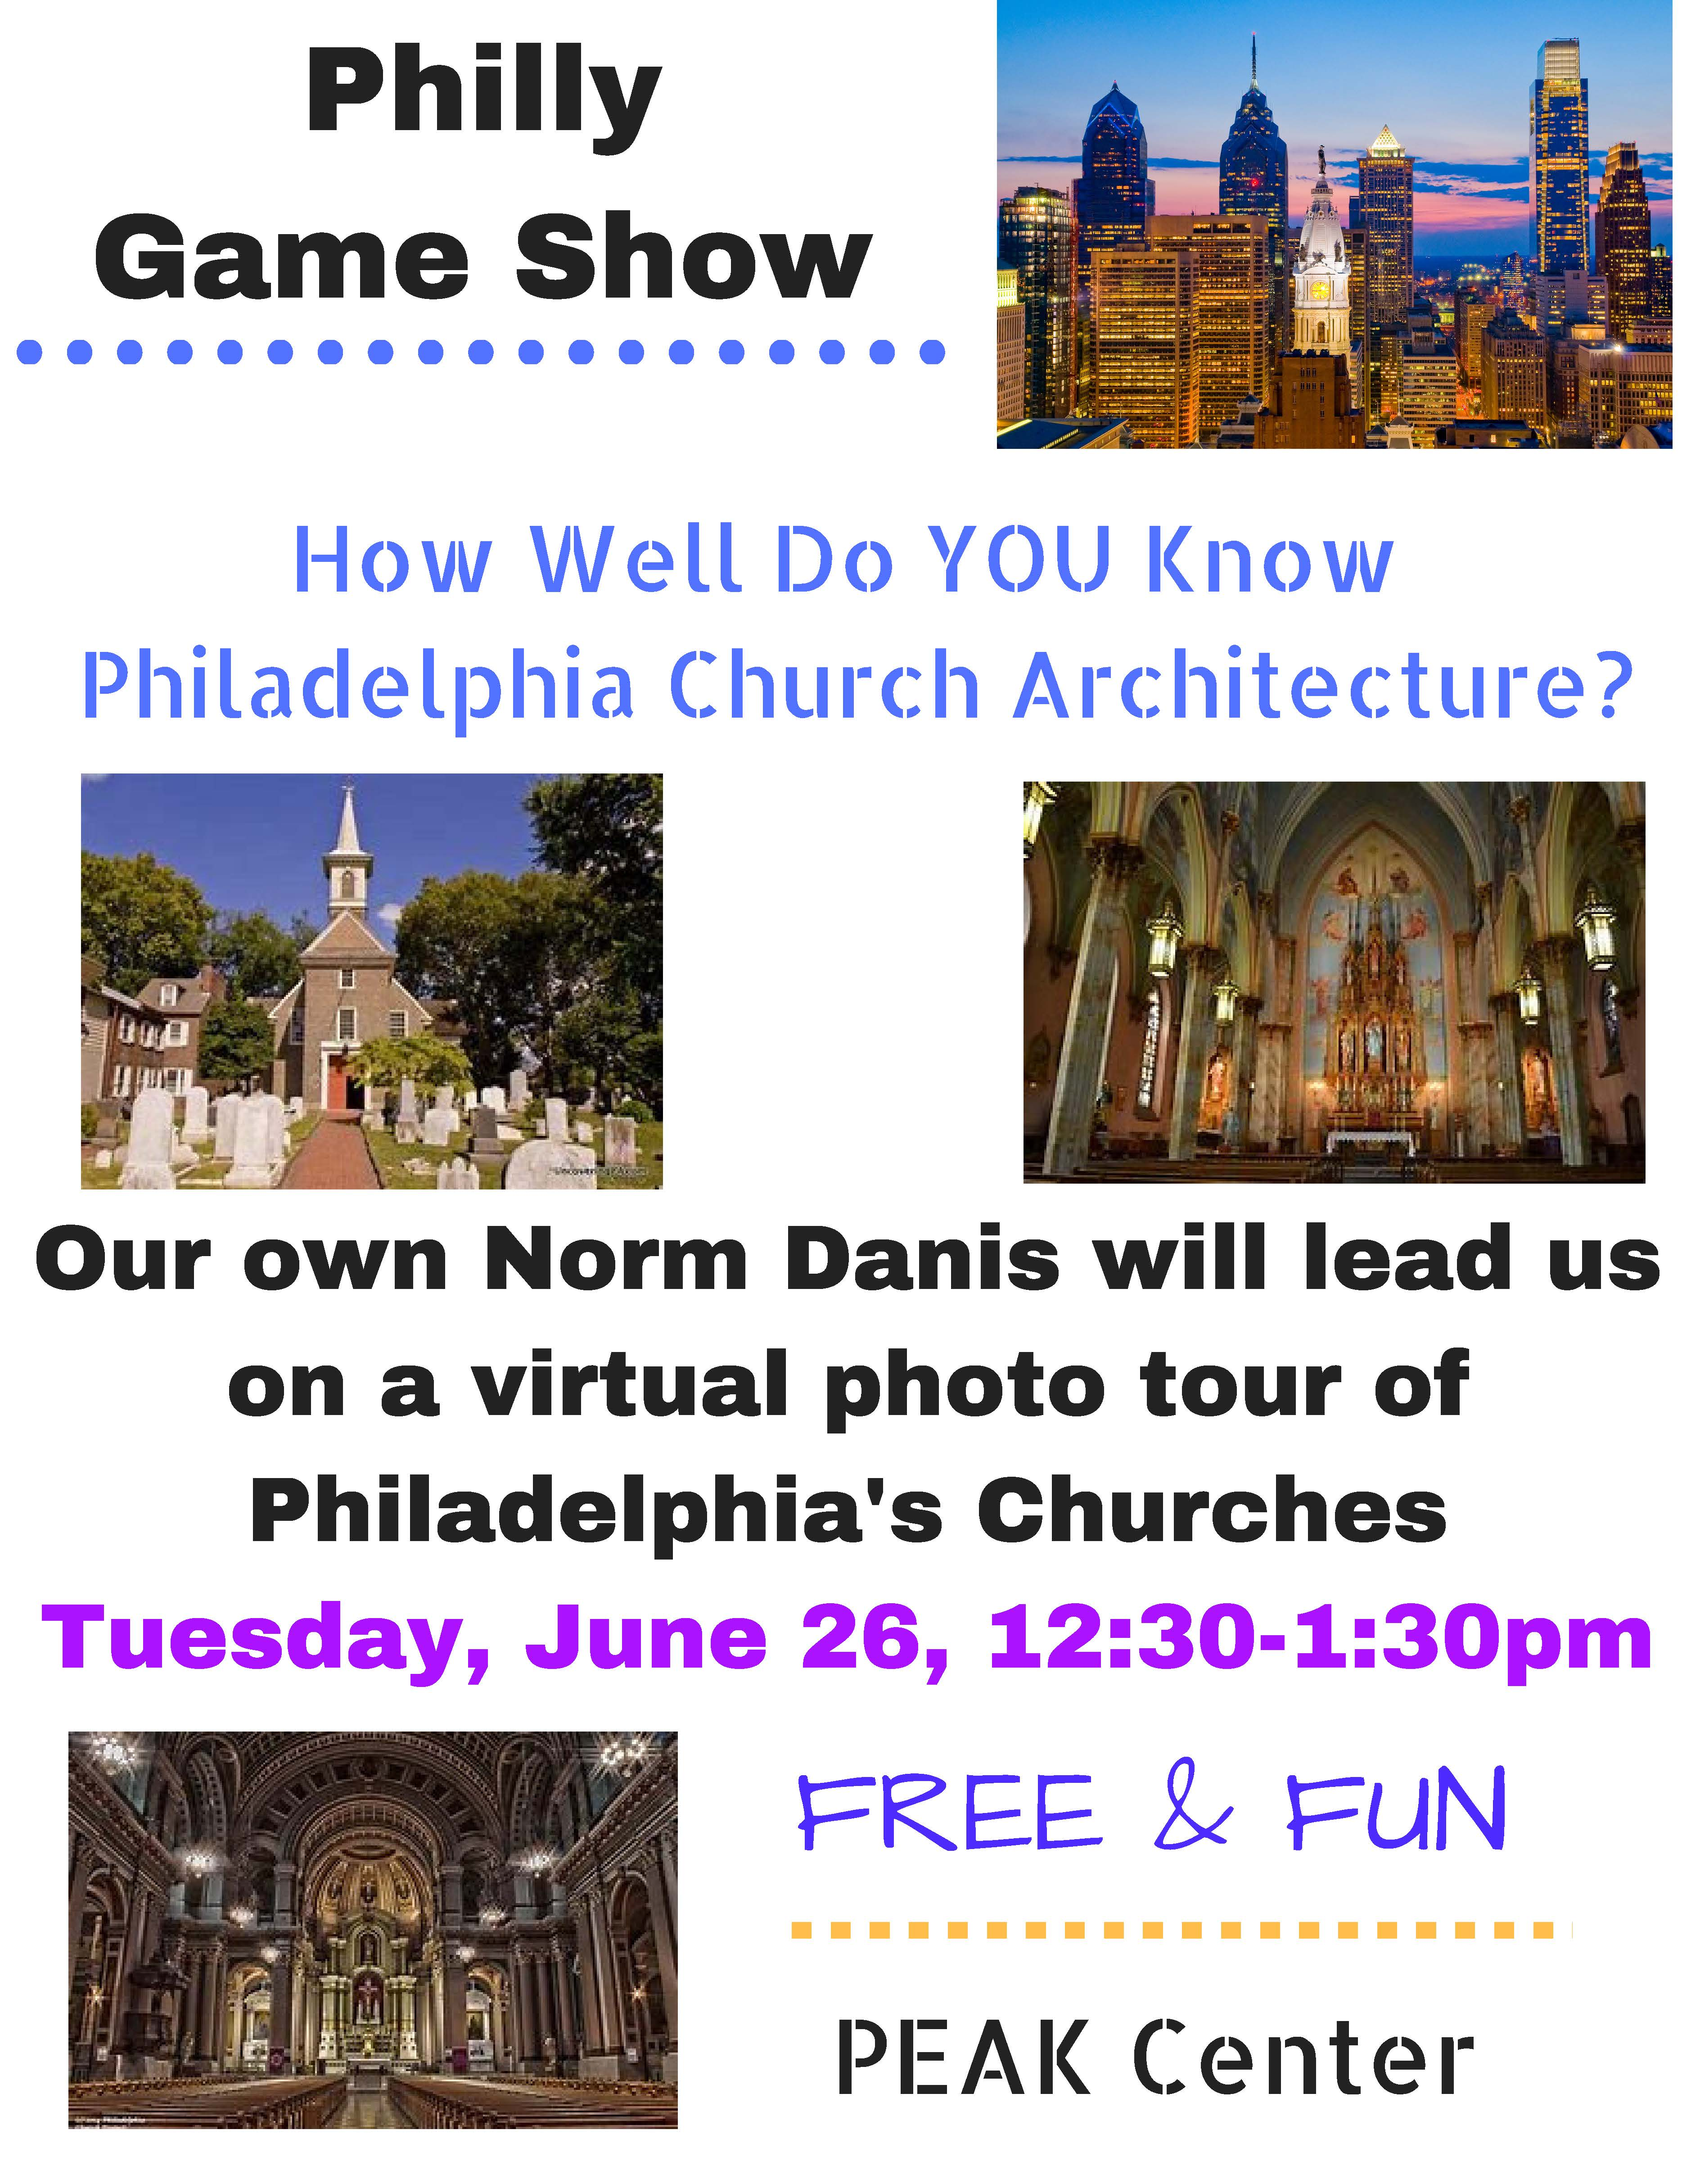 Copy of Philly Game Show.jpg